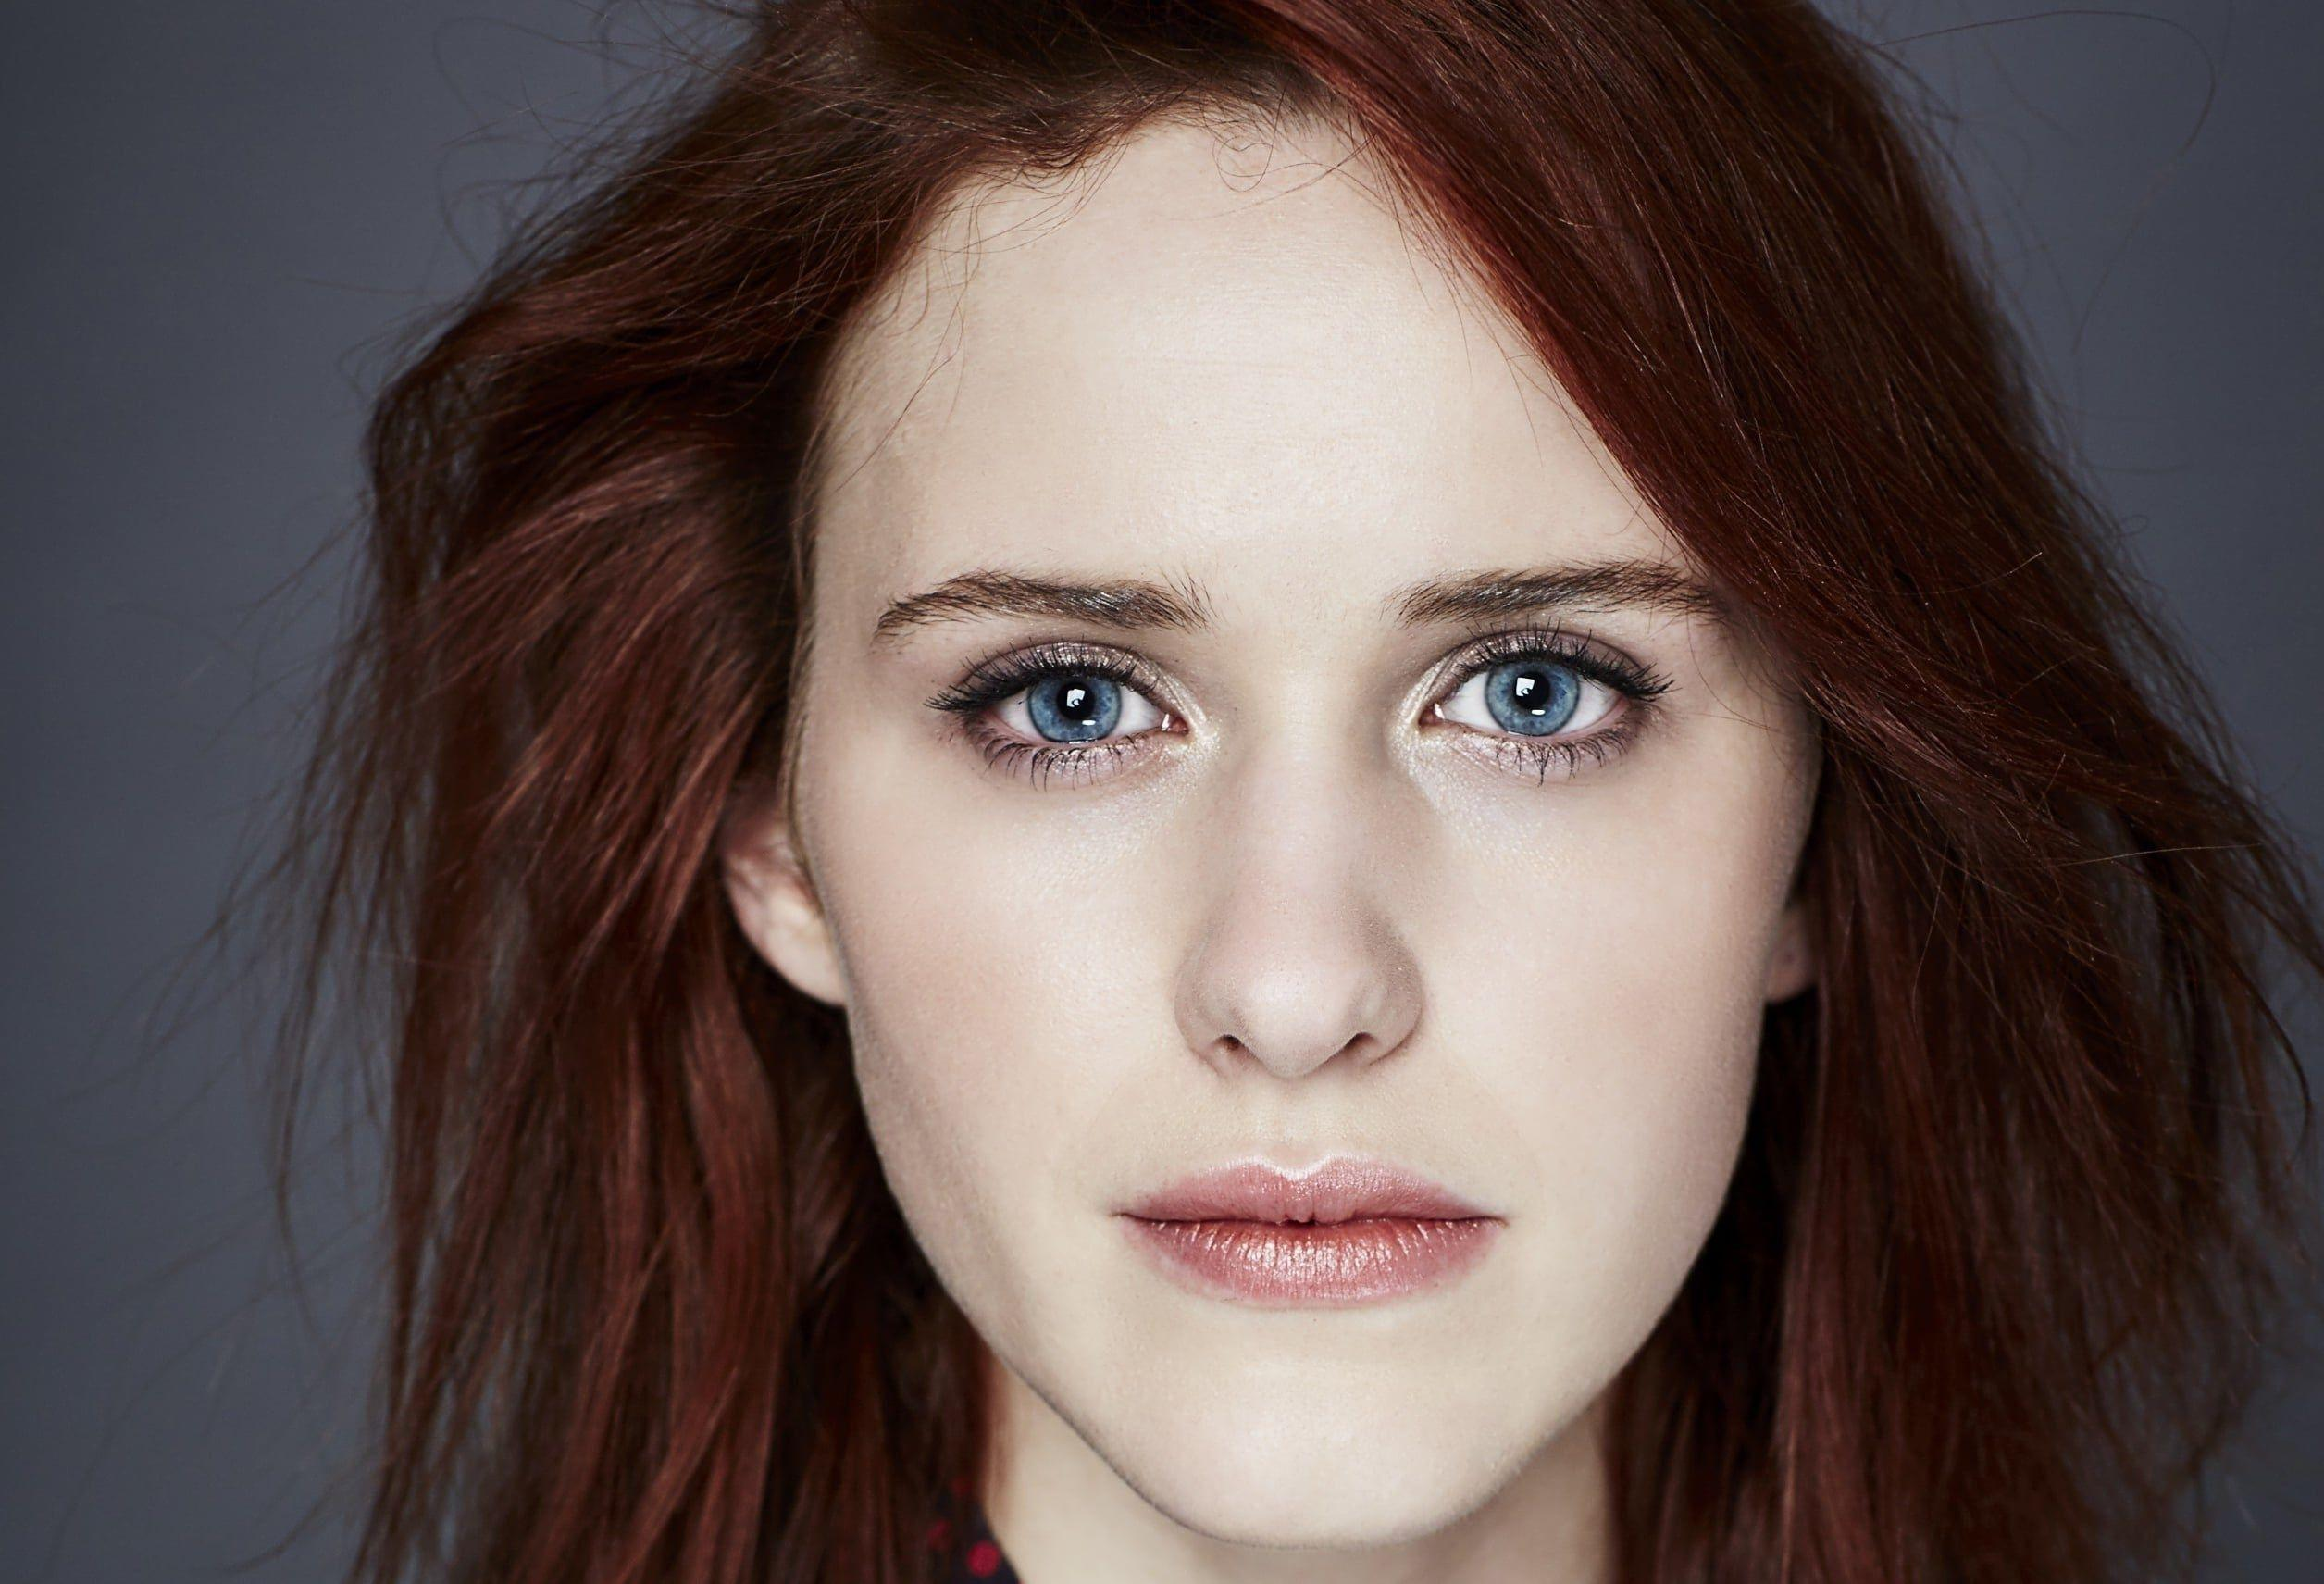 Rachel Brosnahan Actress House of Cards Rachel Brosnahan was born in in Milwaukee Wisconsin in 1990 and is an American actress She is best known for